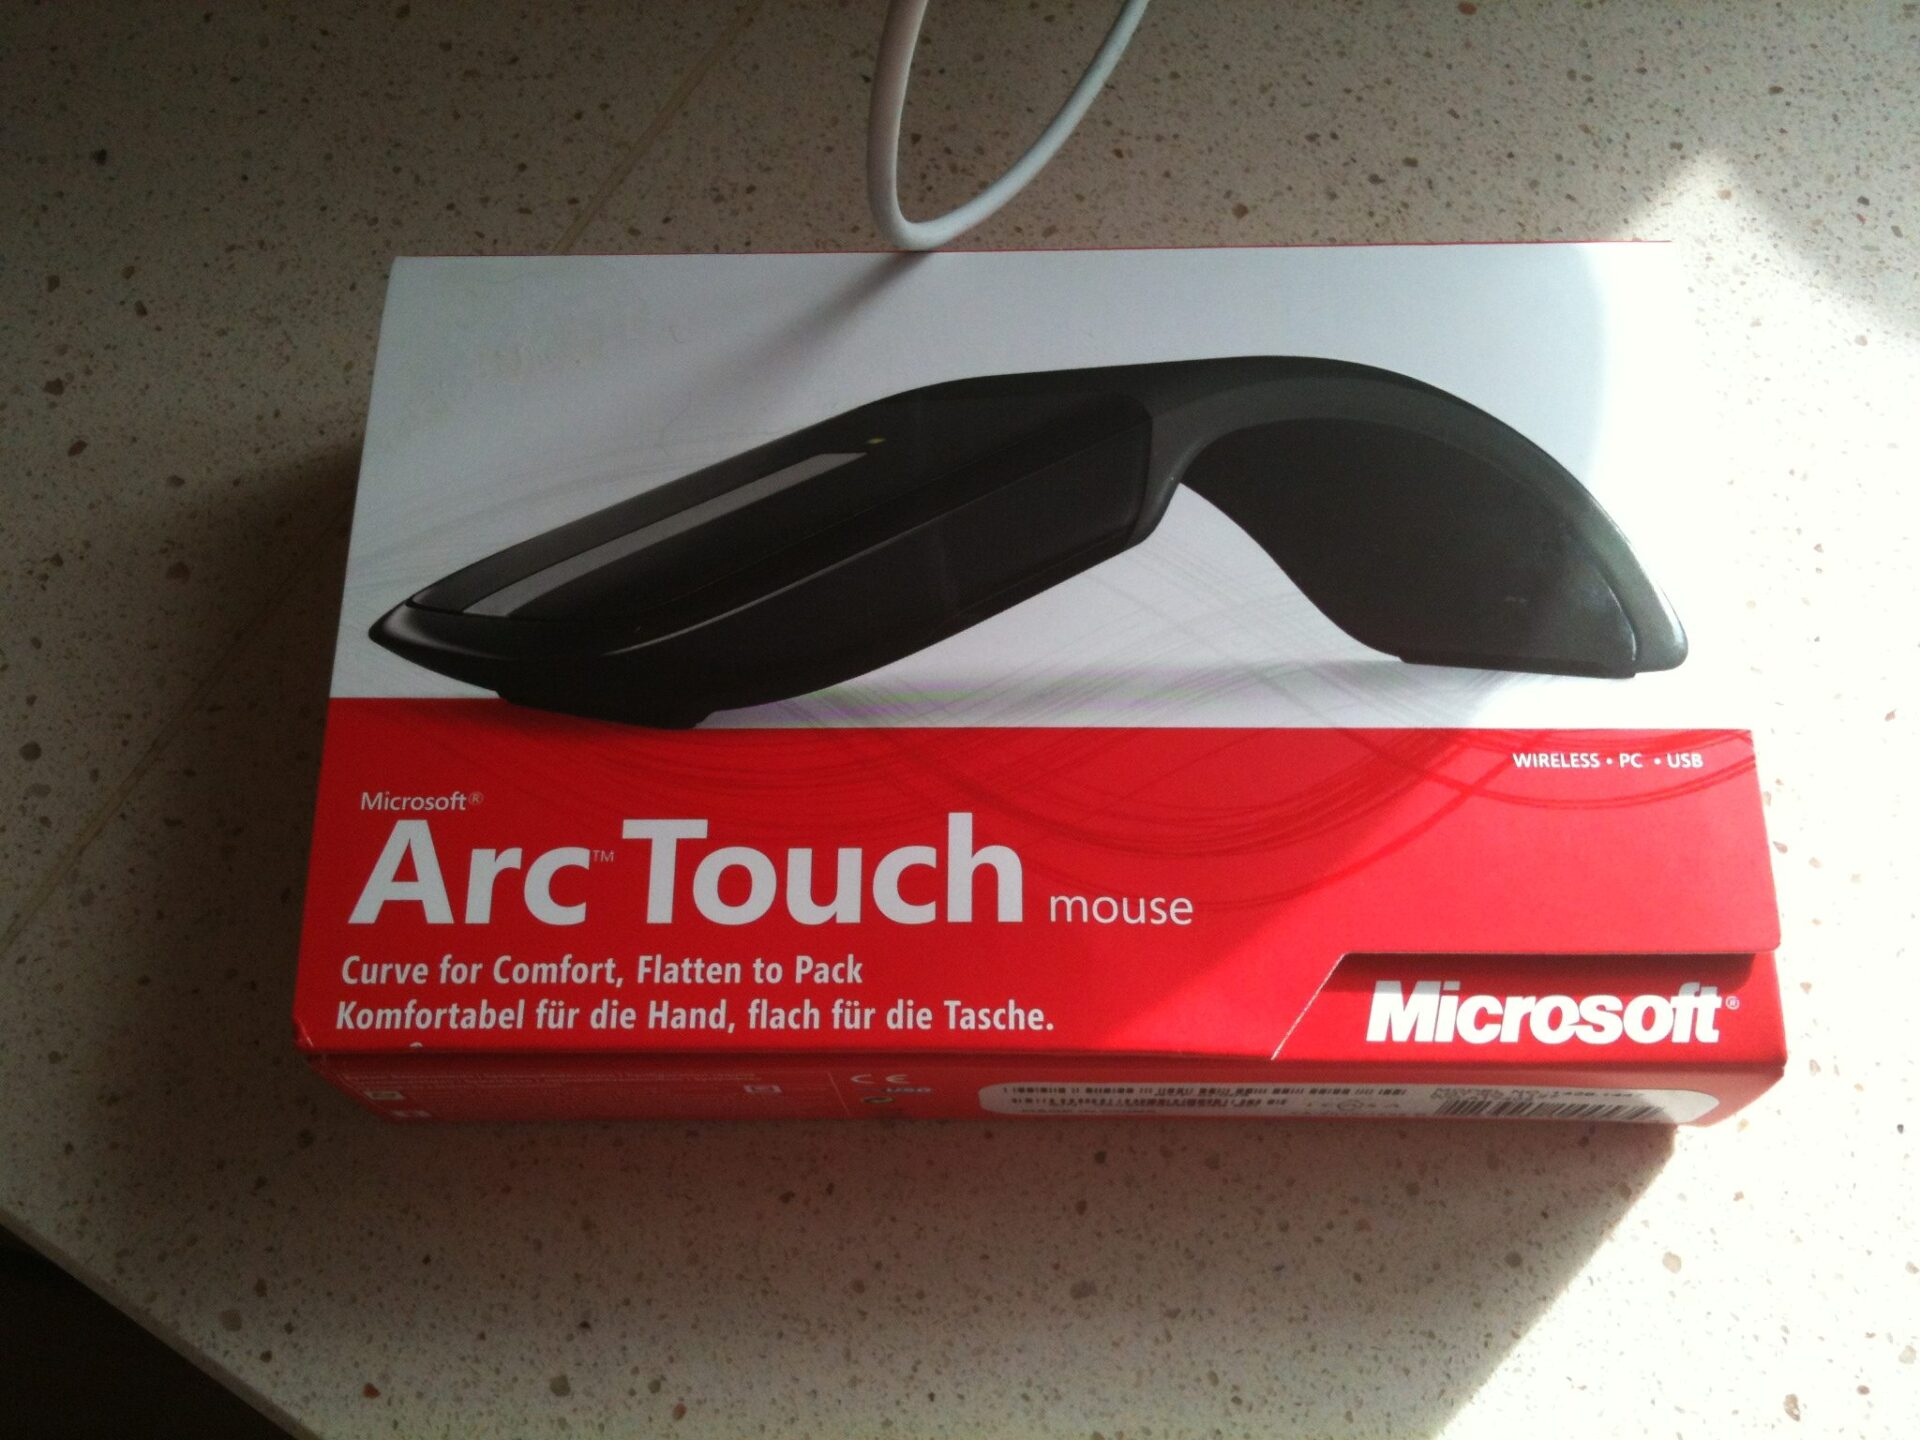 Microsoft Arc Touch Mouse Review - in the box